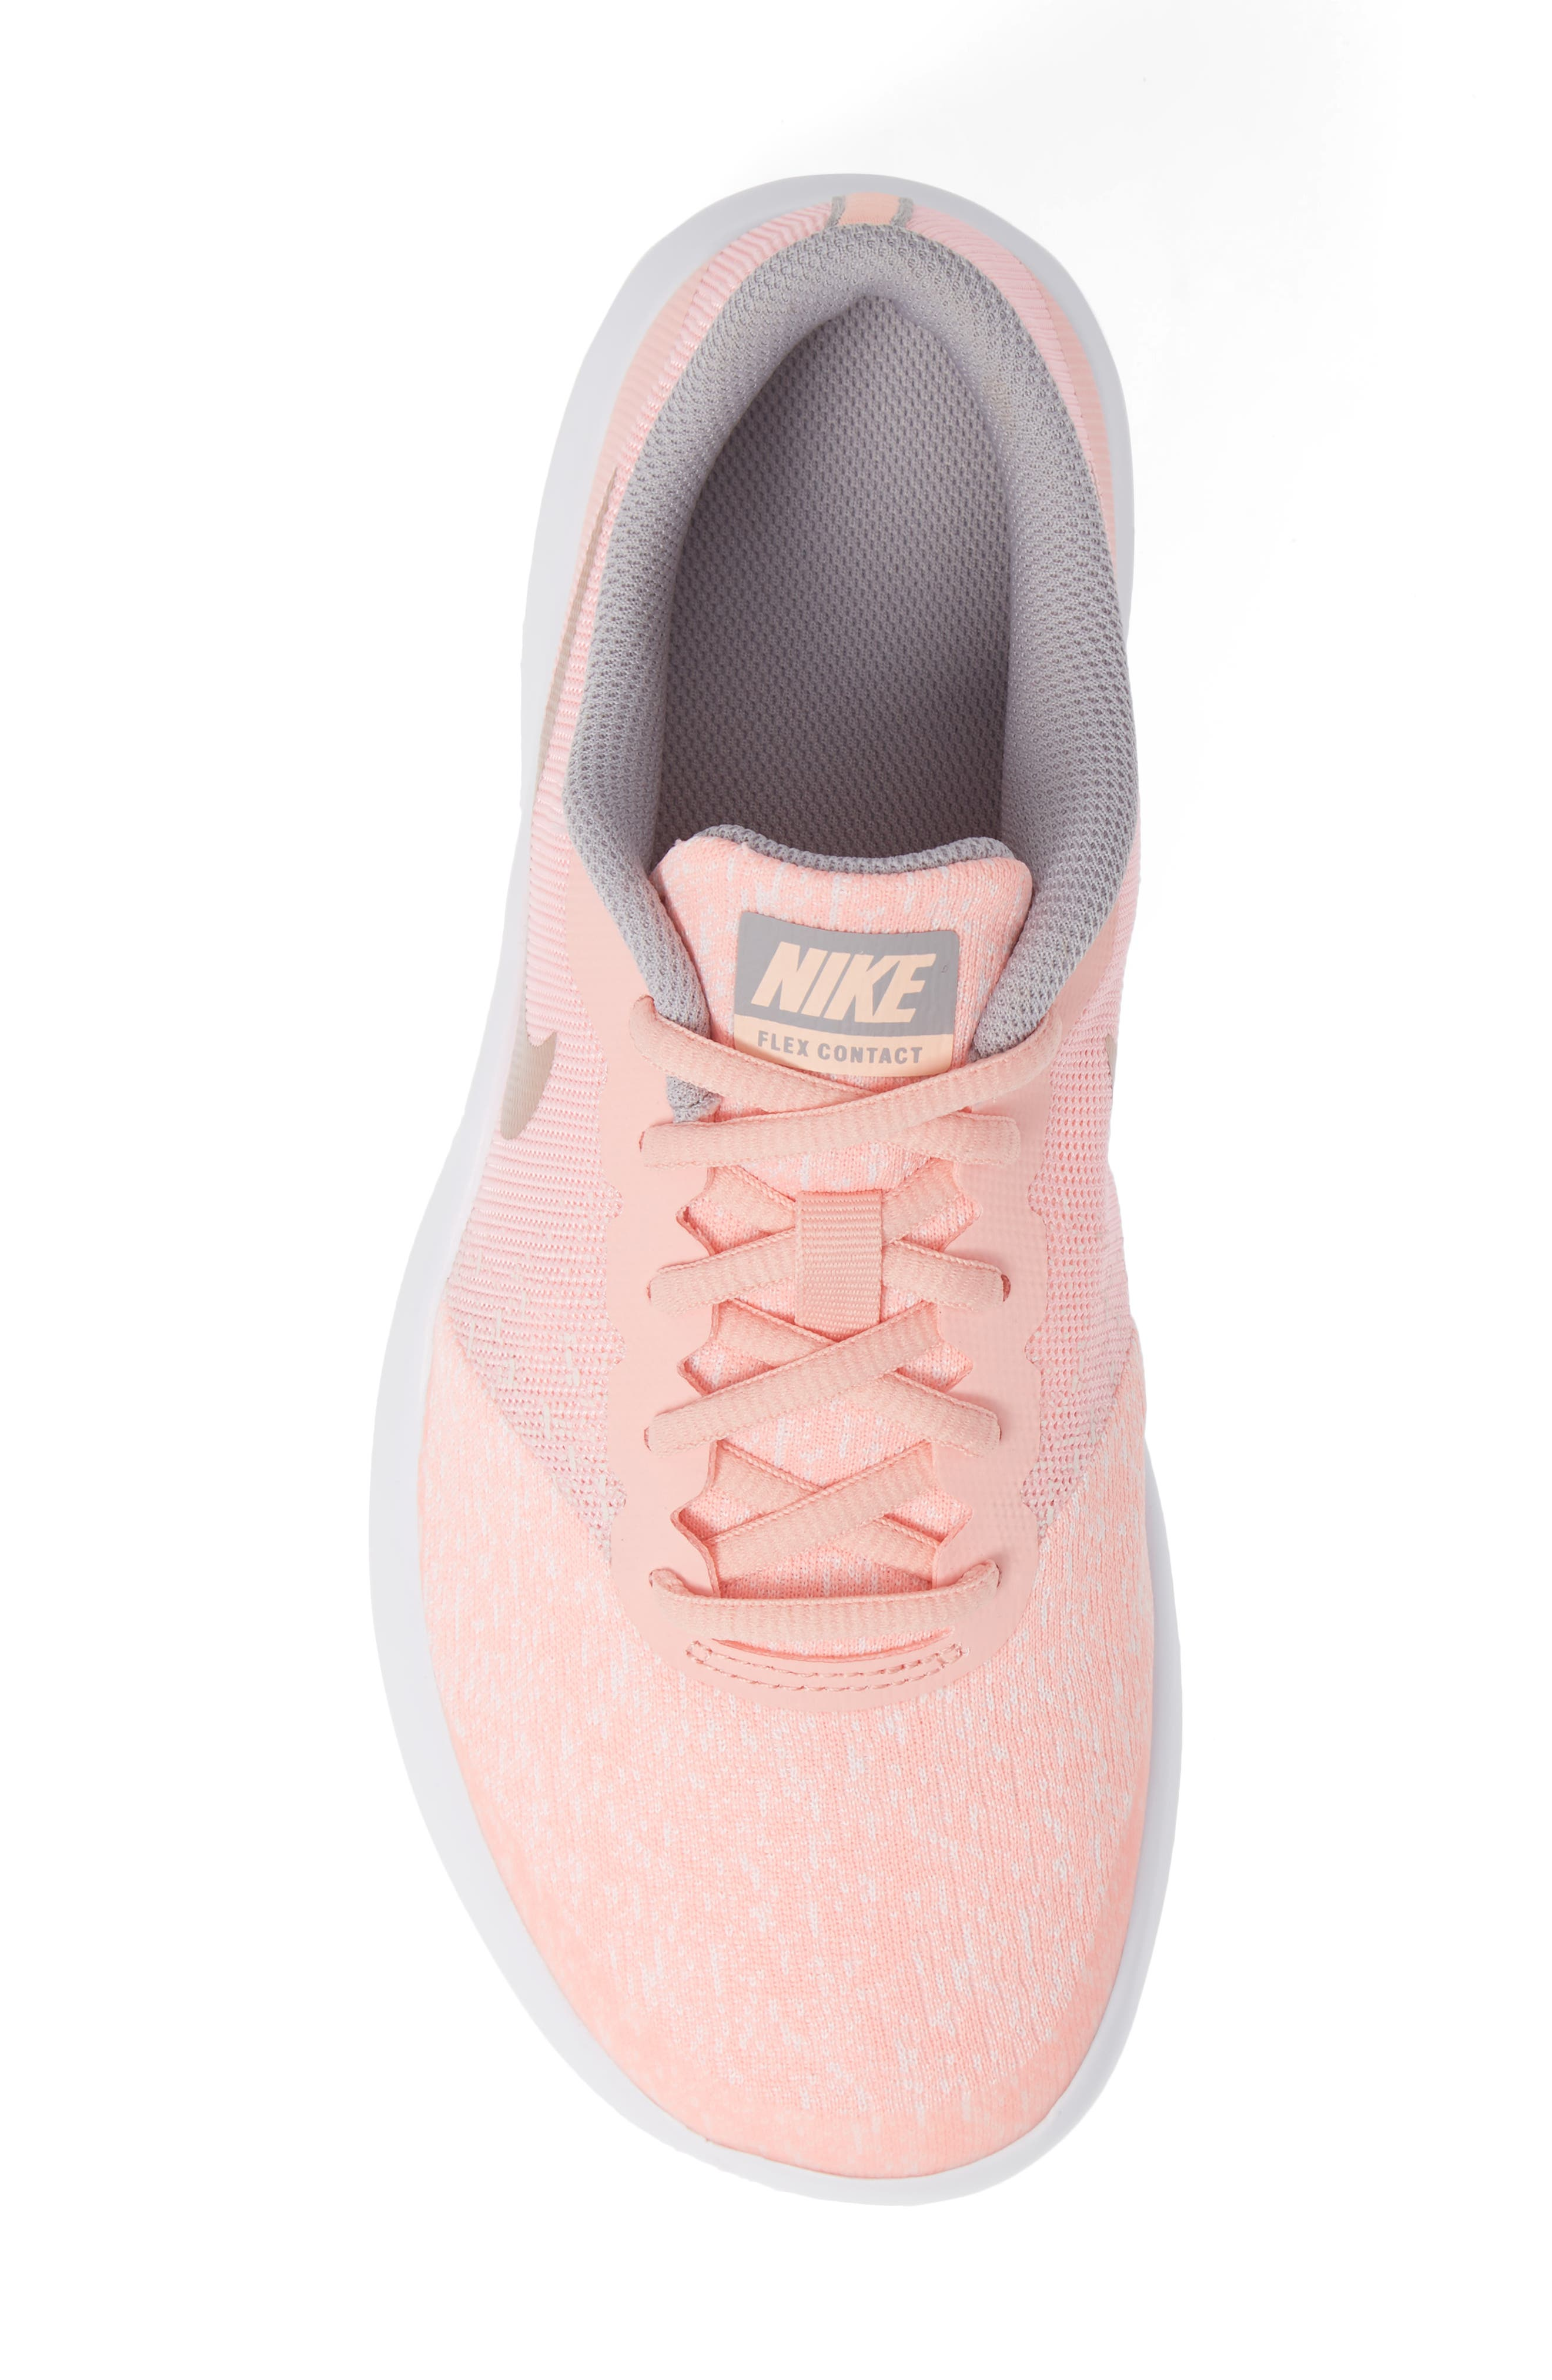 Flex Contact Running Shoe,                             Alternate thumbnail 5, color,                             ROSE GOLD/ STORM PINK